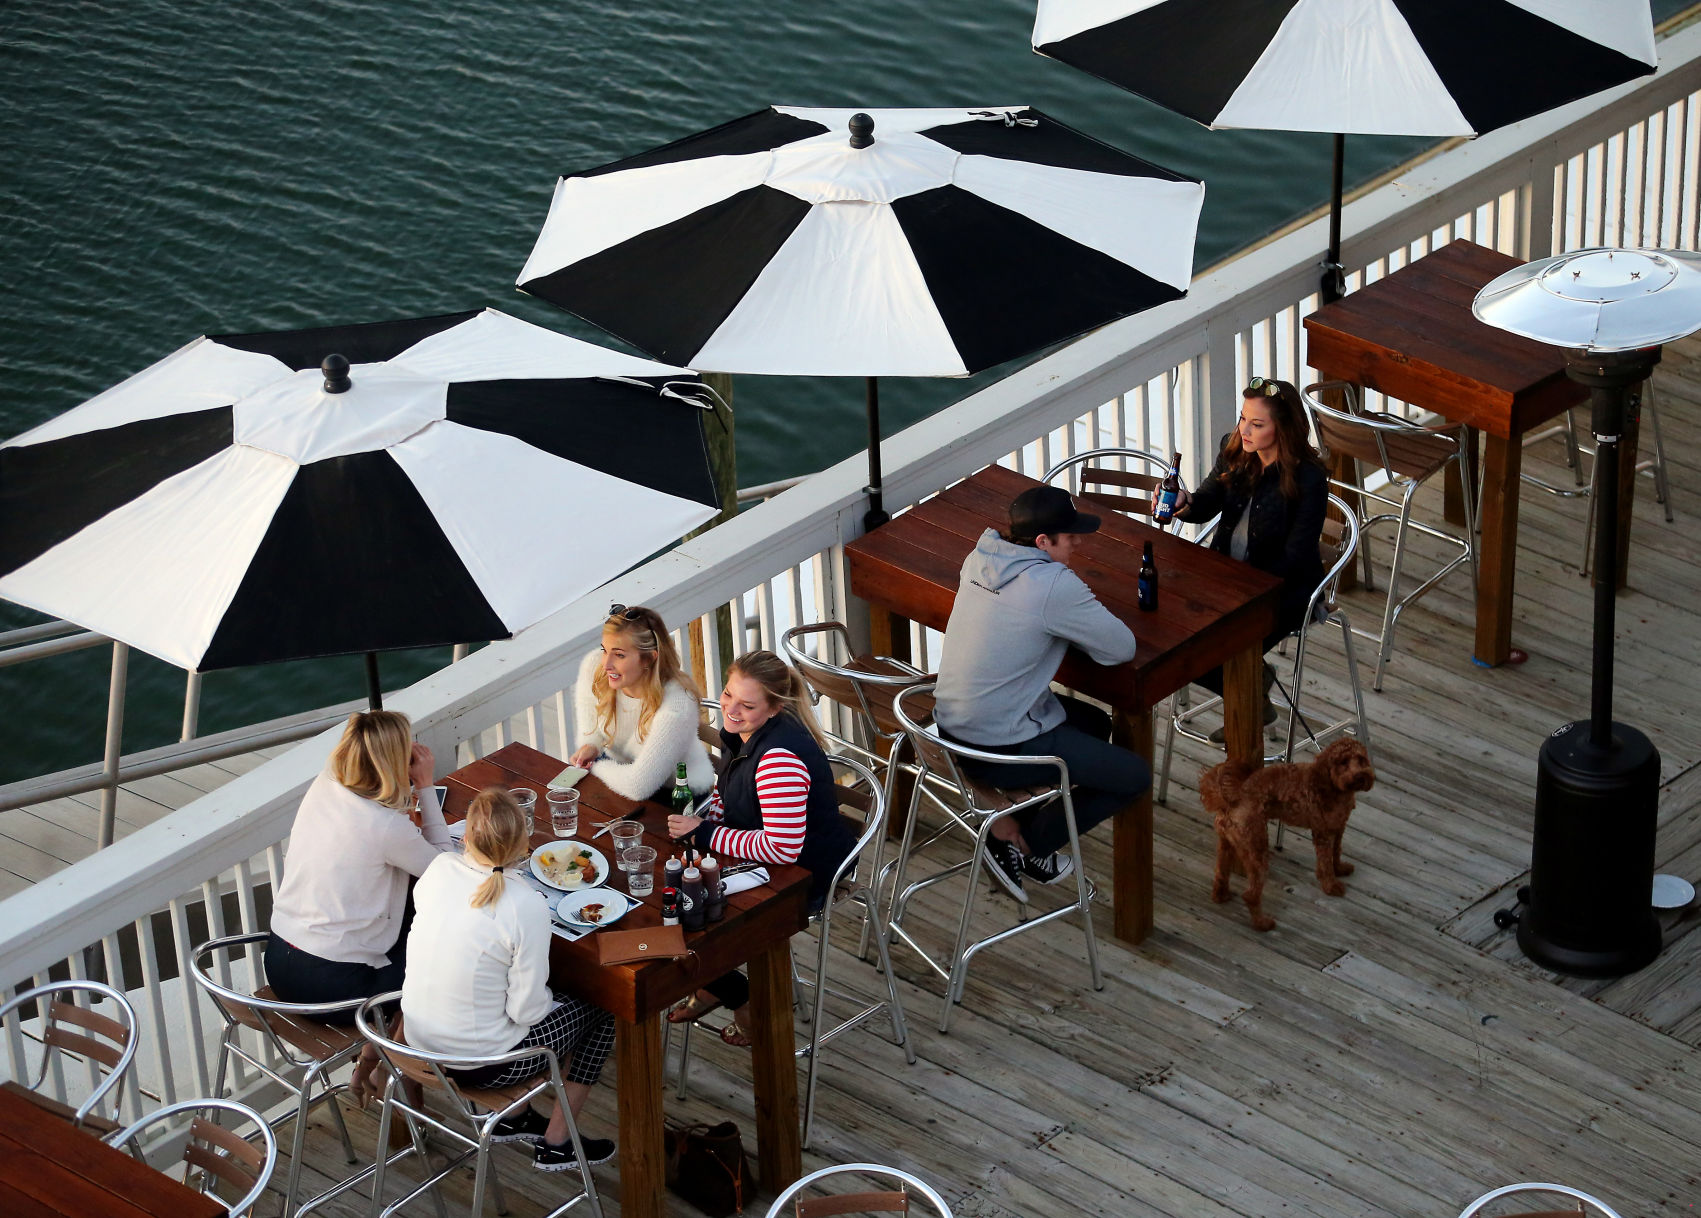 Charleston wants to bring outdoor dining codes in line with practice's current popularity | Post and Courier